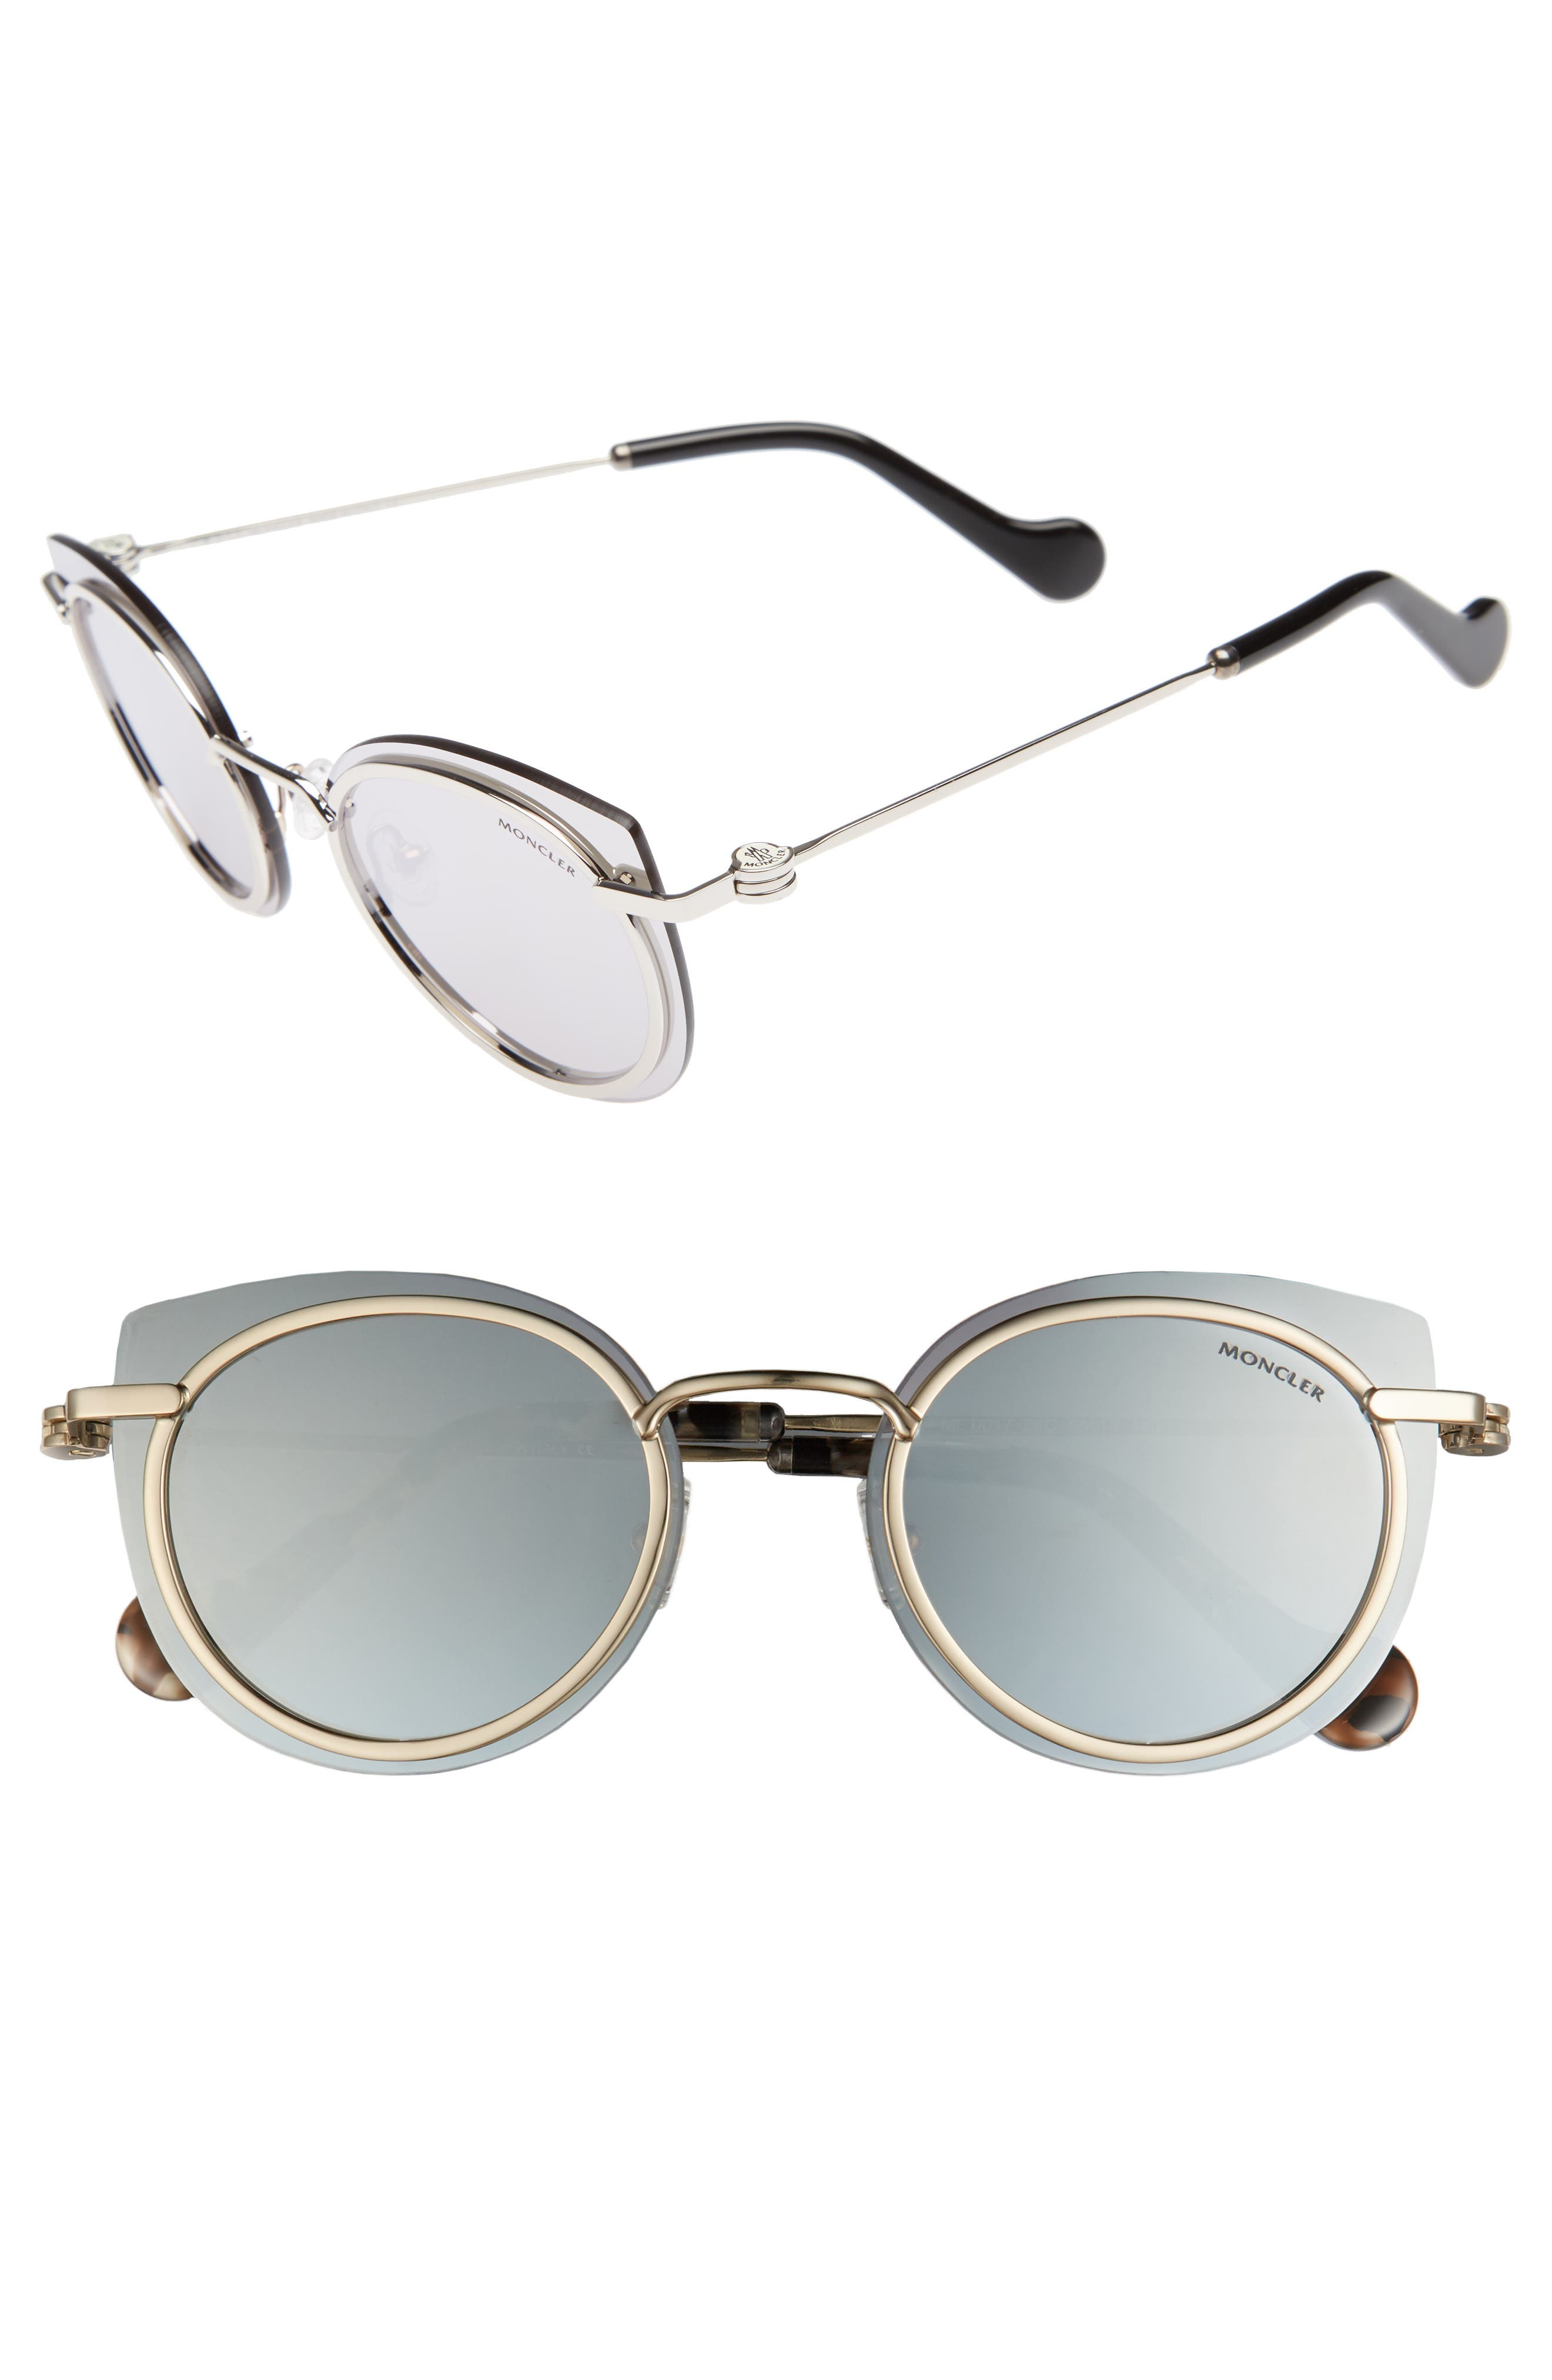 56mm Mirrored Cat Eye Sunglasses,                             Main thumbnail 1, color,                             040